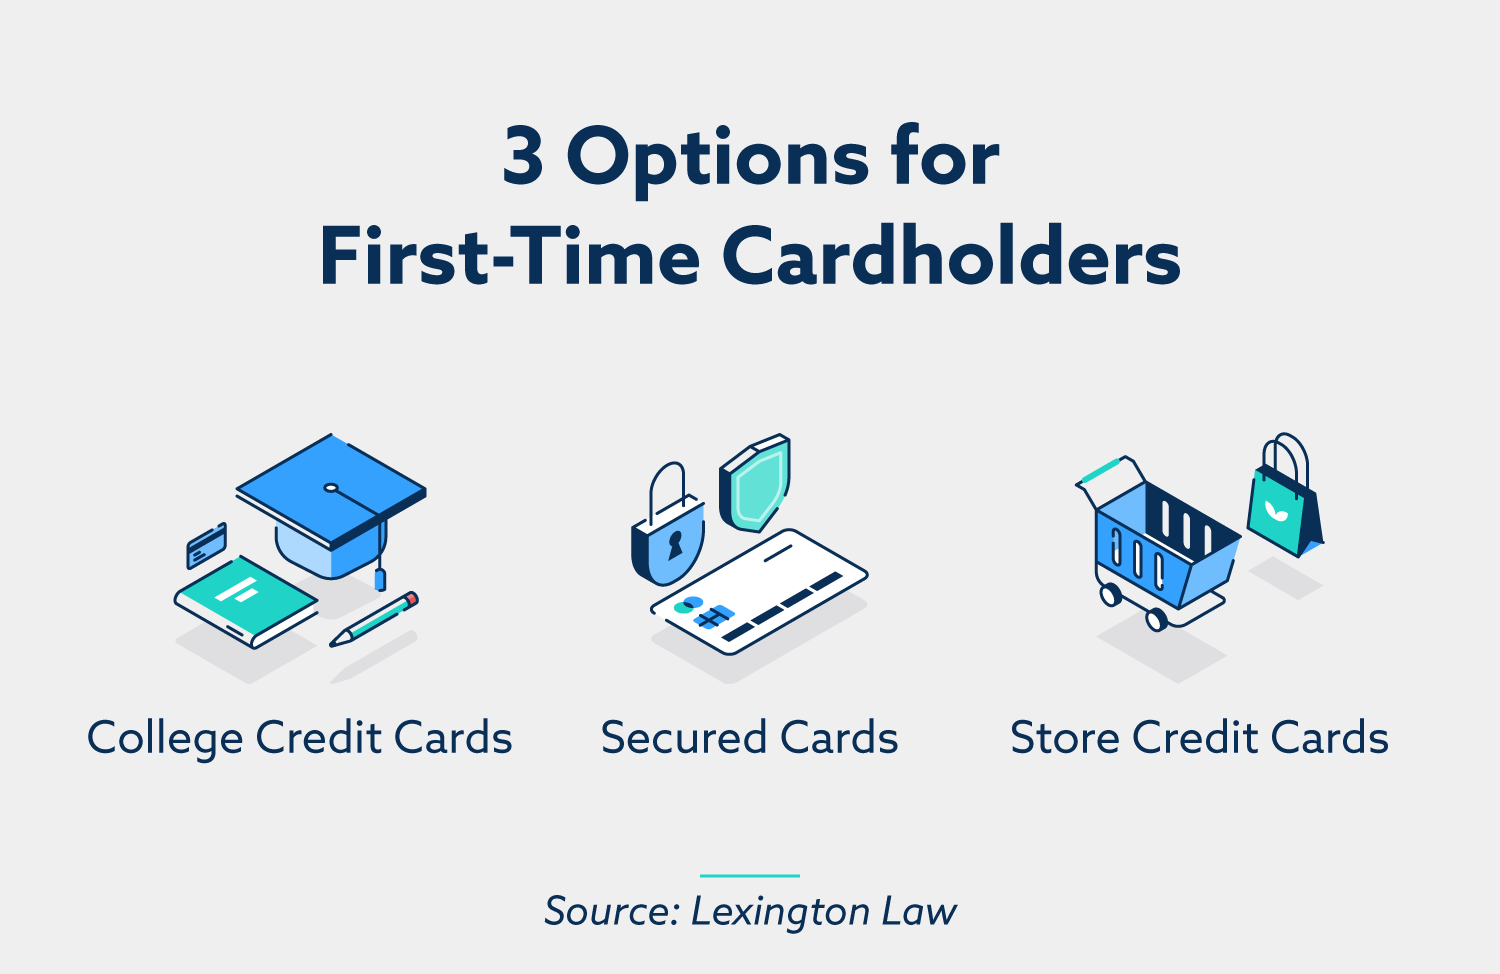 3 options for first-time cardholders: college credit cards, secured cards, store credit cards.